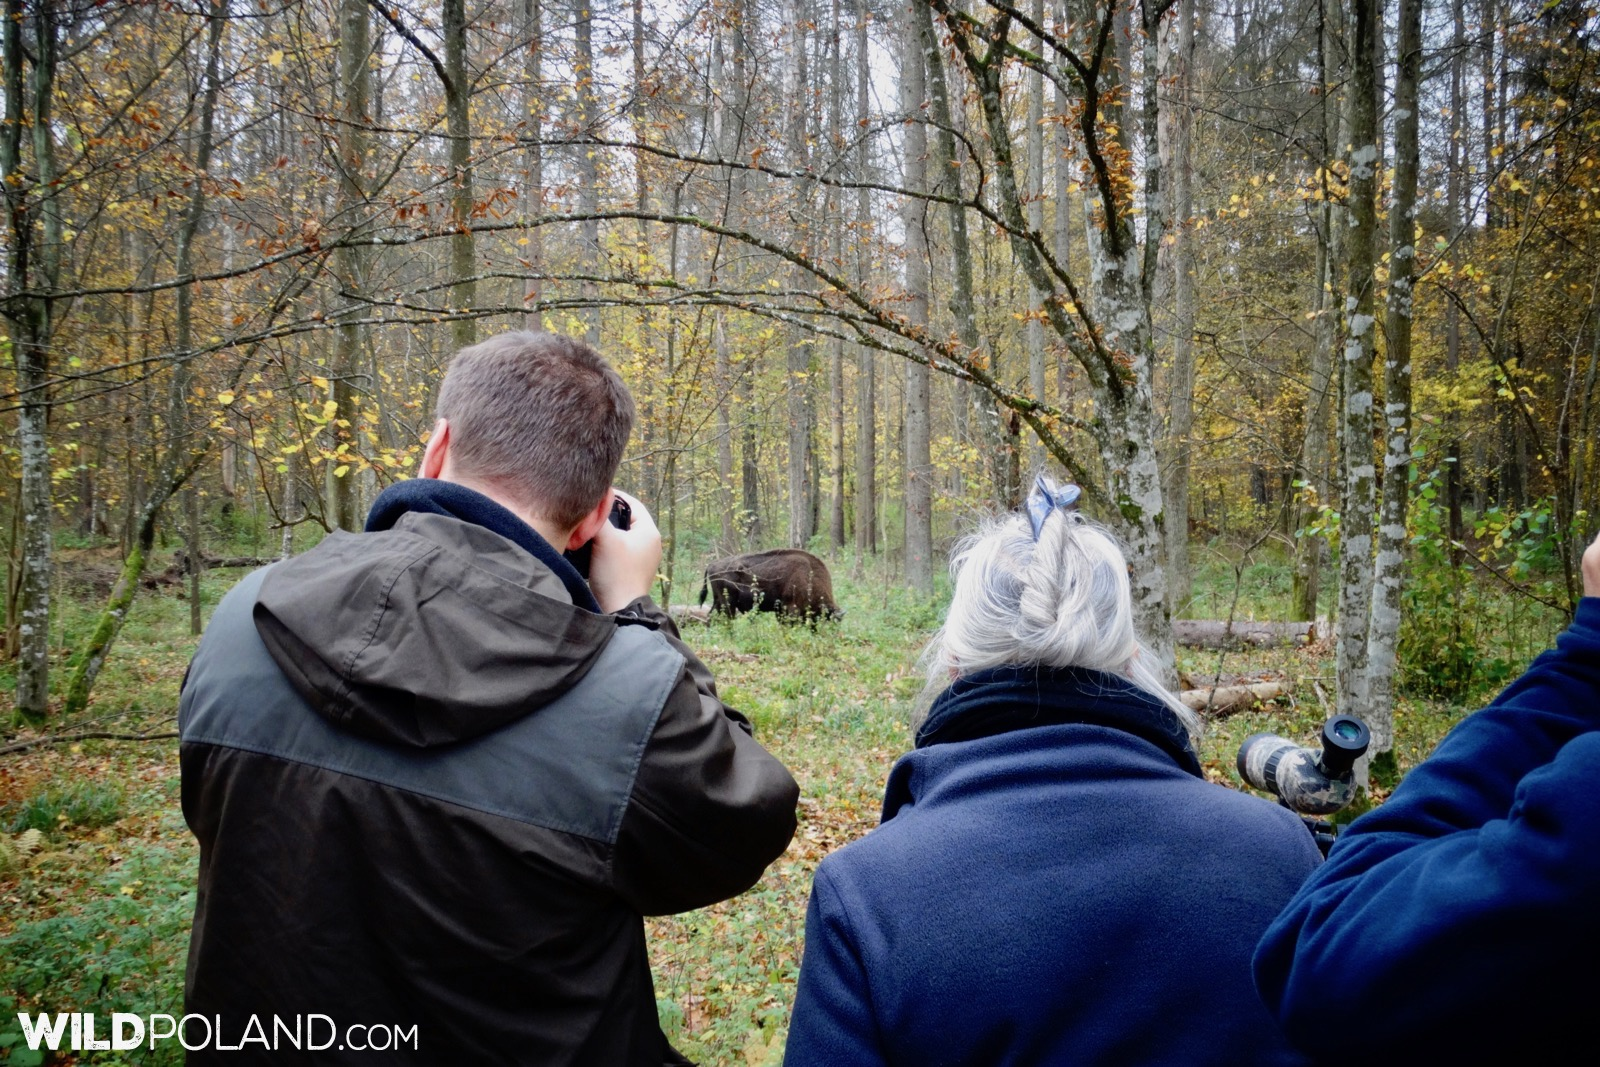 Autumn Bison Safari with Wild Poland, Białowieża Forest, photo by Piotr Dębowski